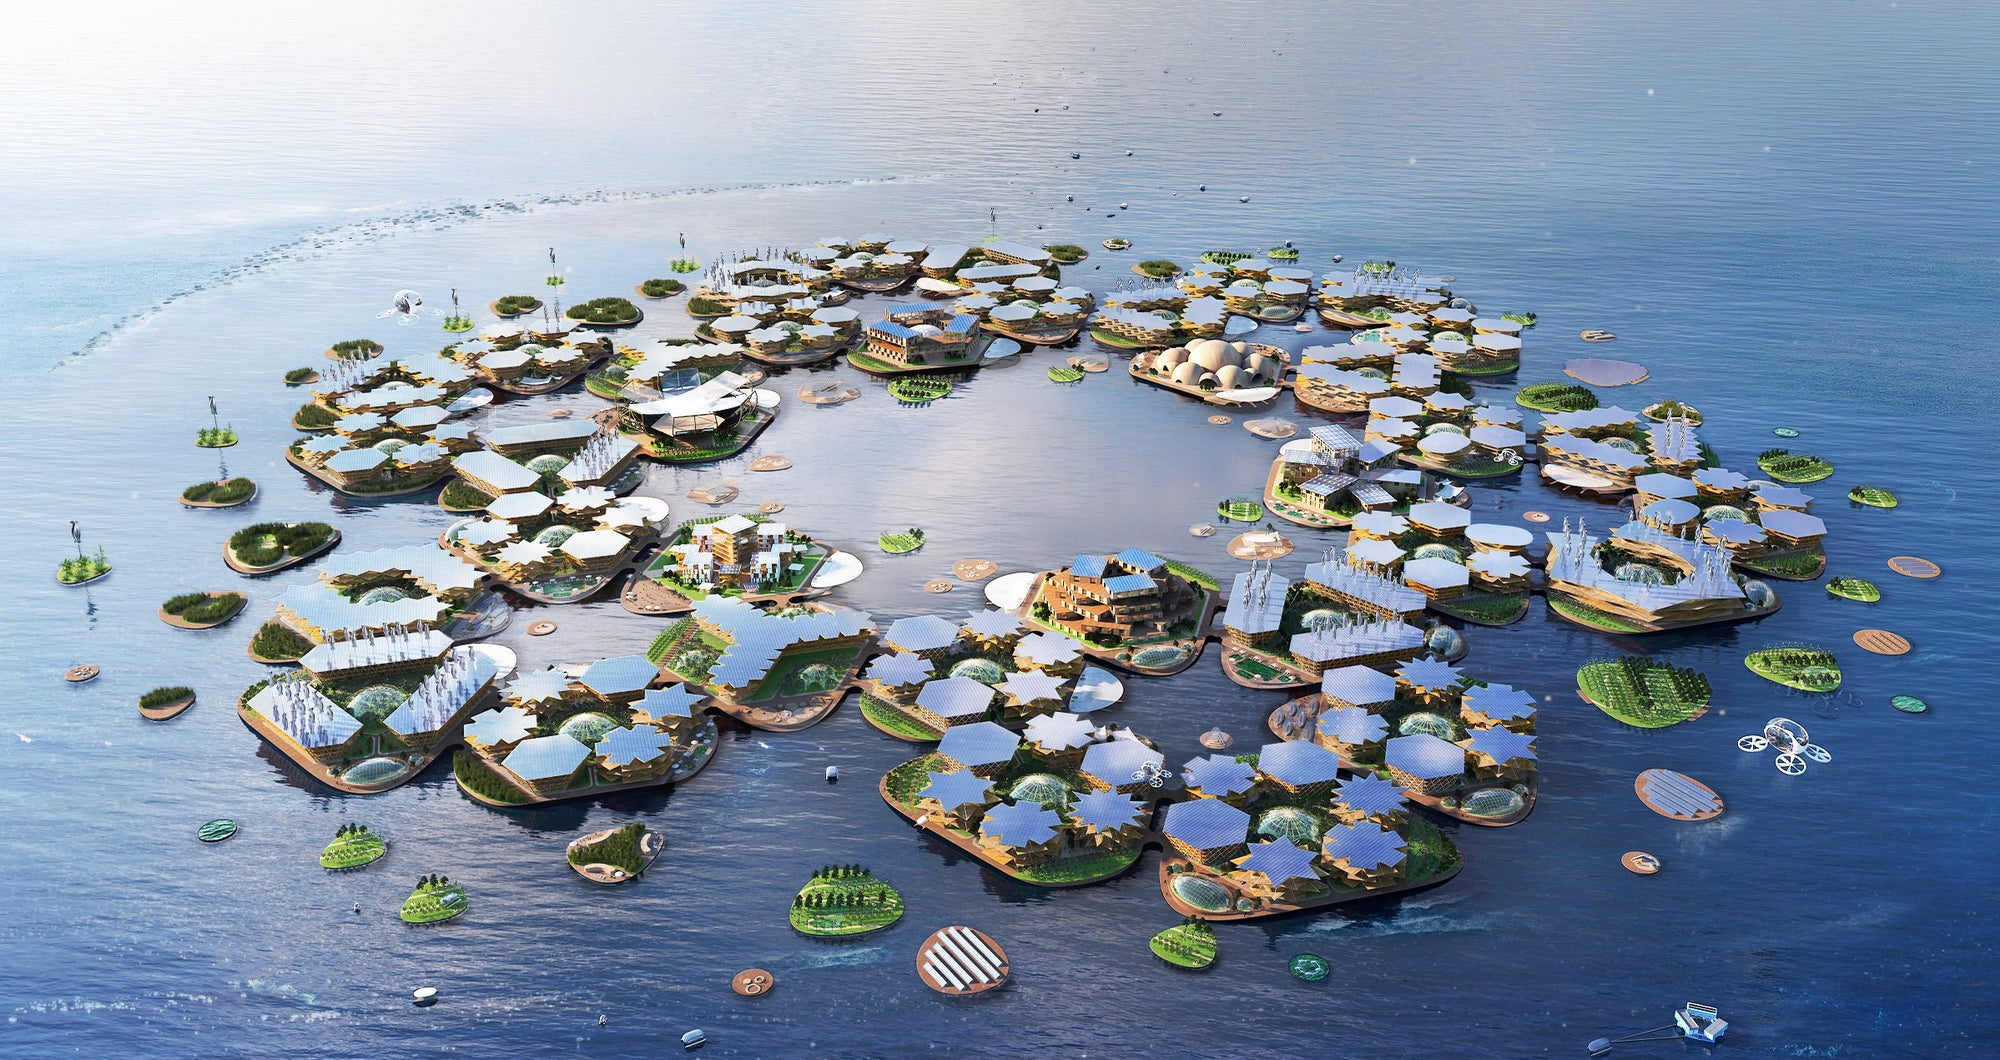 Oceanix: The Floating City Concept